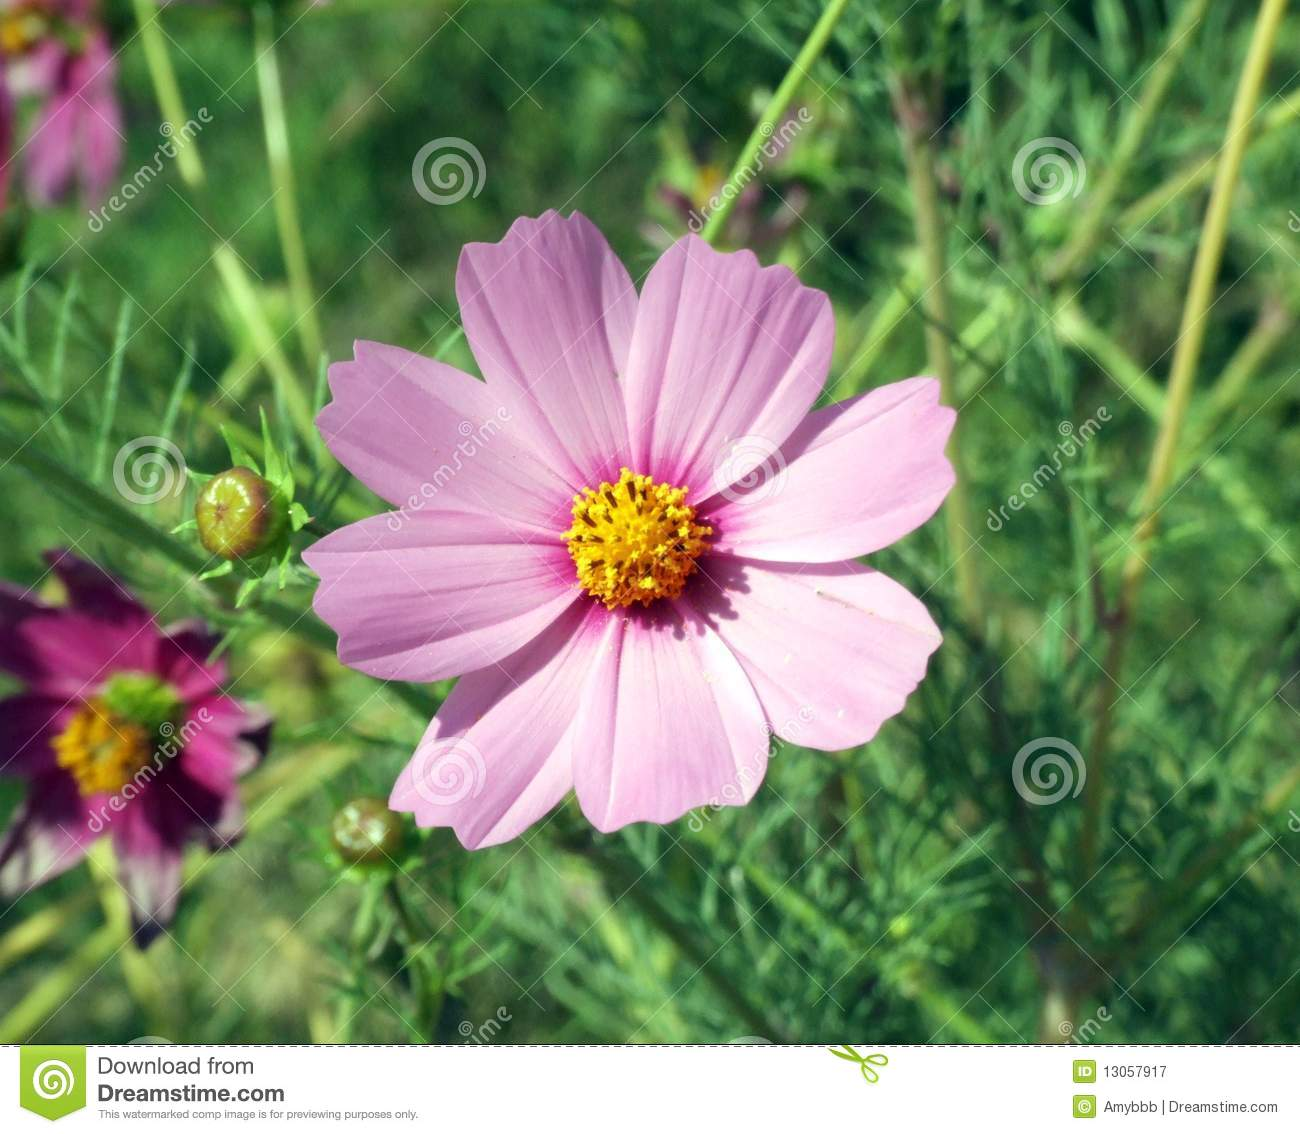 Pink Flower Yellow Center Grass Background Stock Images Download